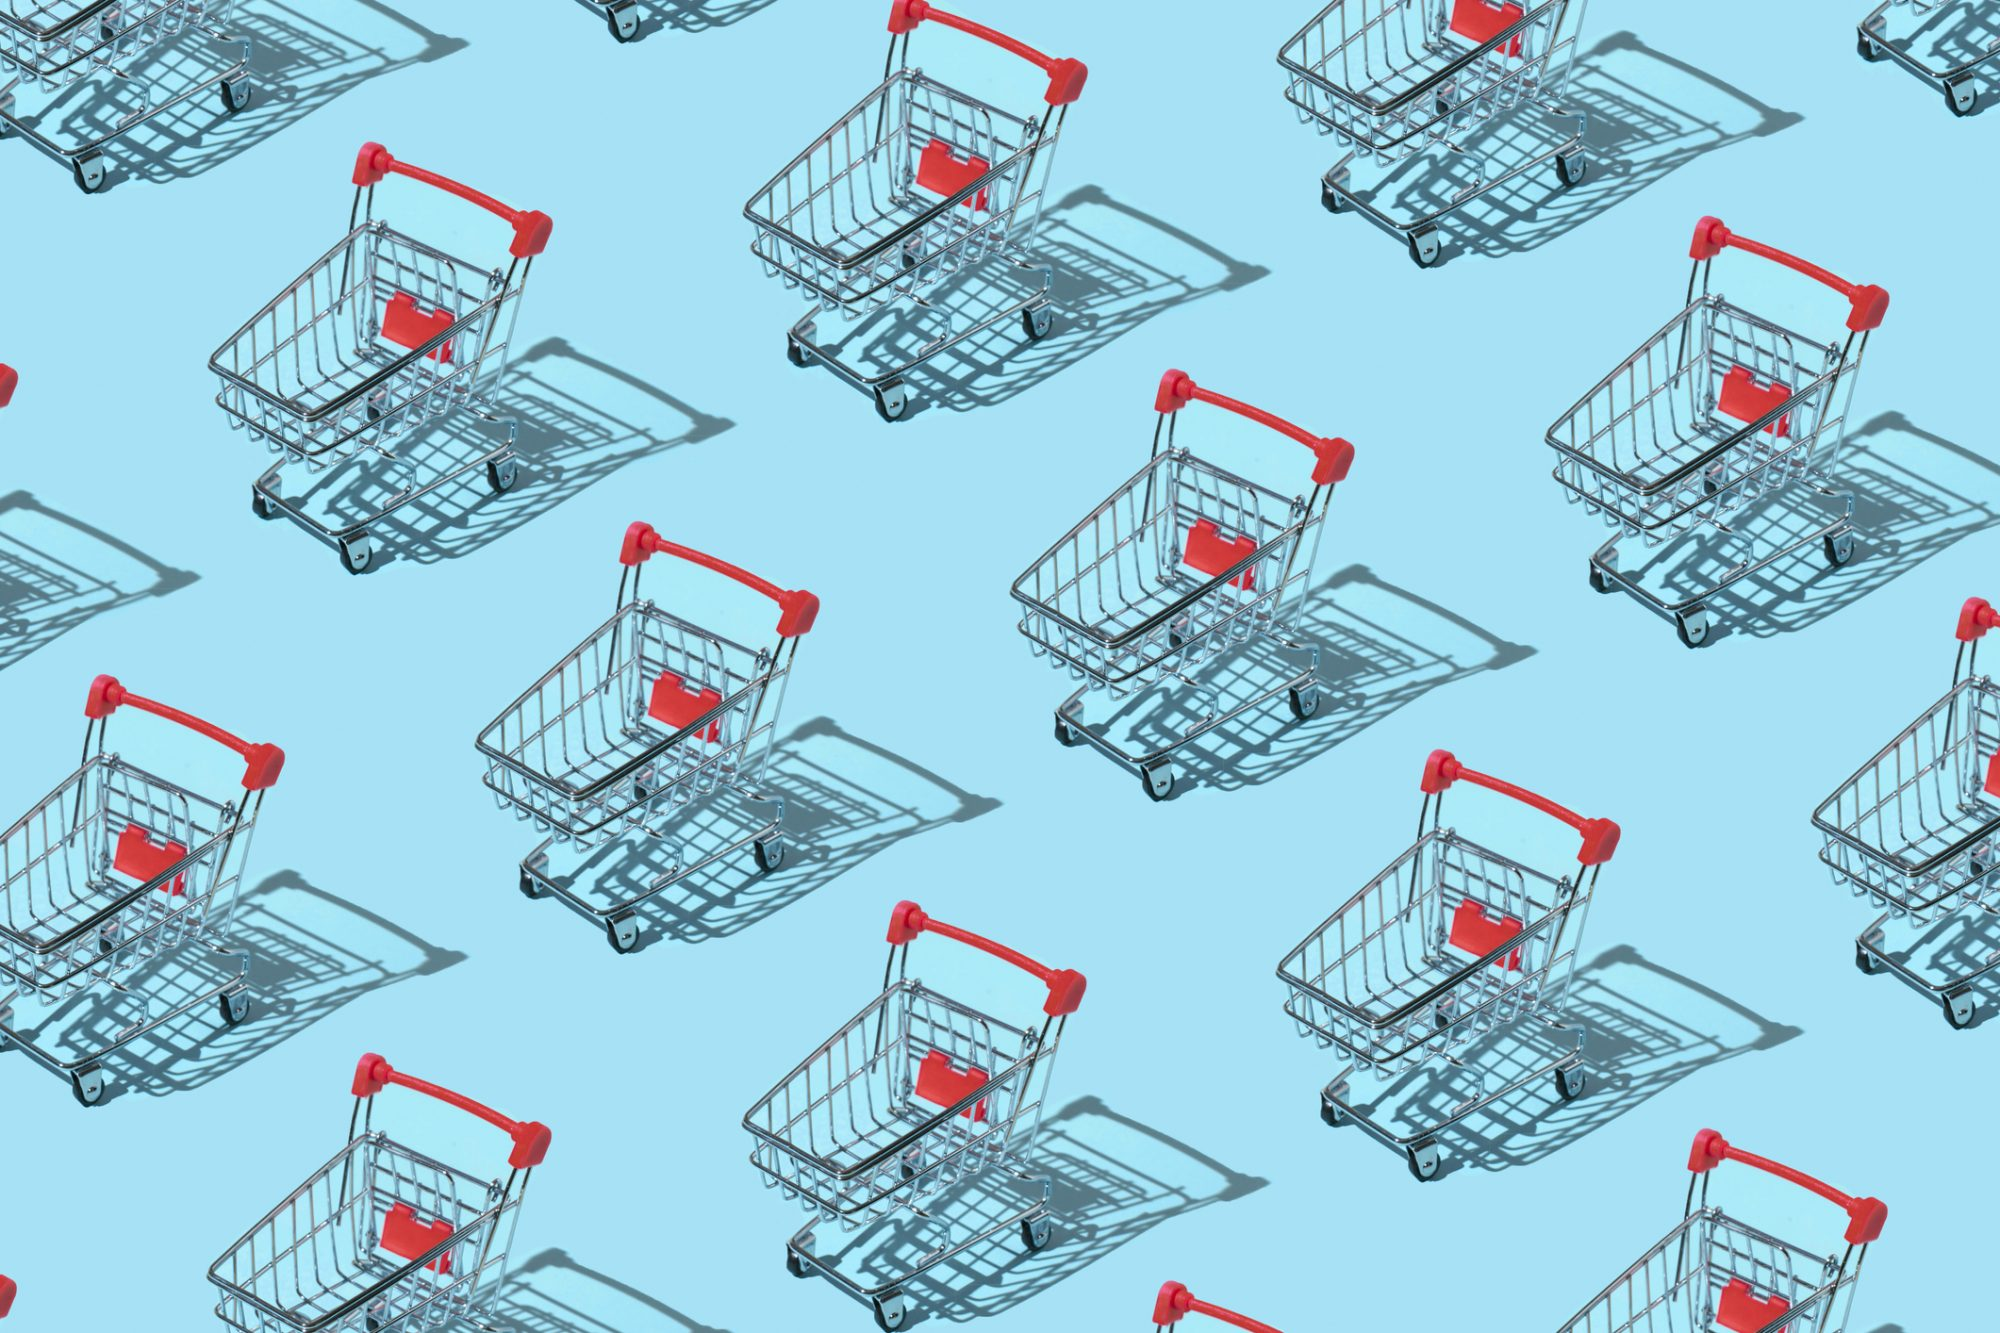 An image of grocery carts.